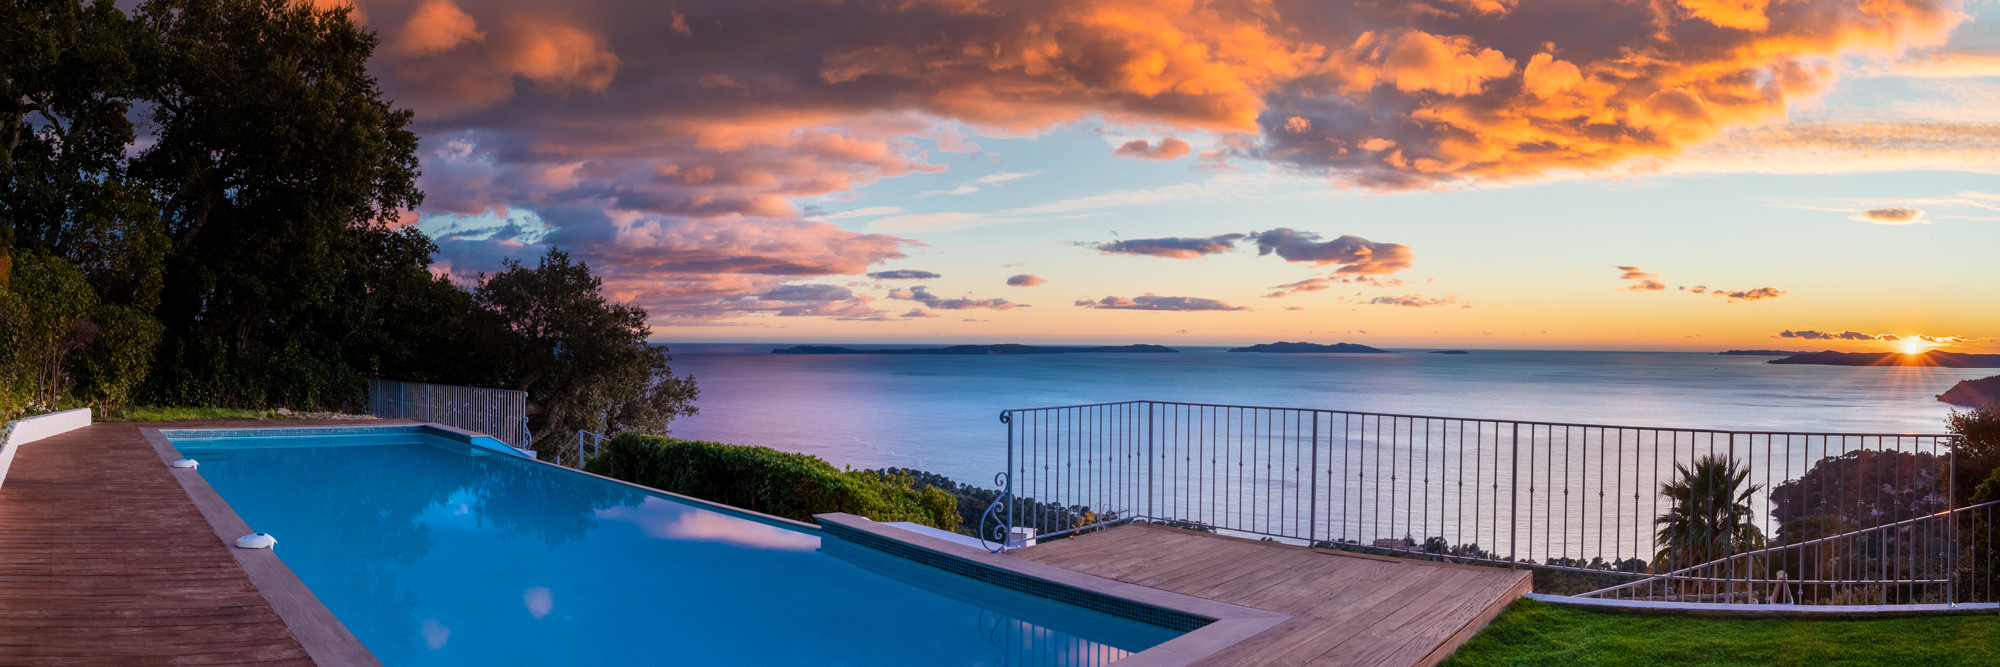 Vistazur pool and sunset on the islands